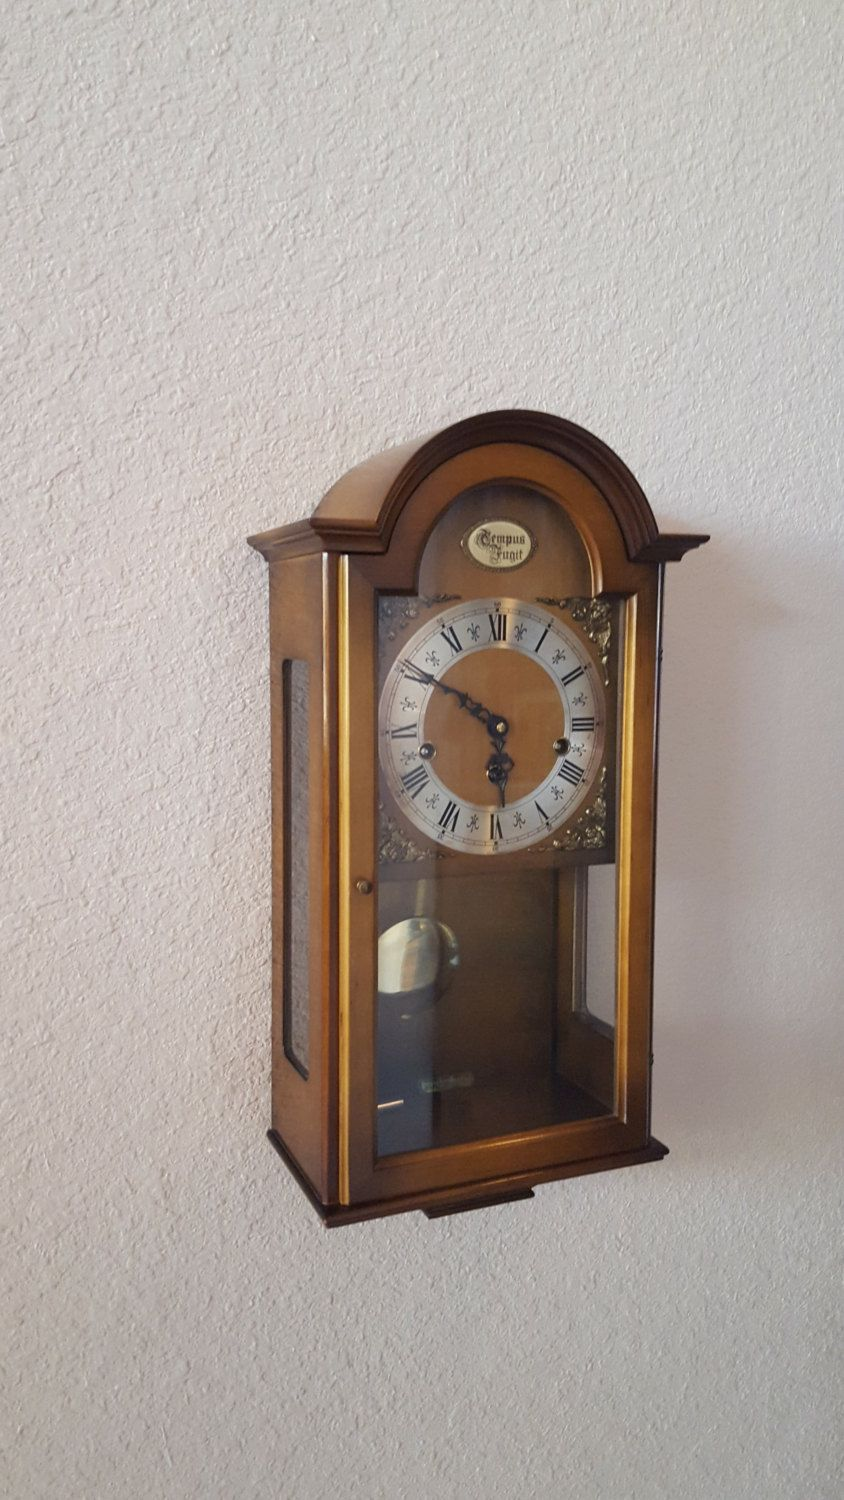 Vintage Antique Haid Brand West German Heirloom Quality Westminster Chiming Wall Clock Professionally R Chiming Wall Clocks Wall Clock Antique Wall Clock